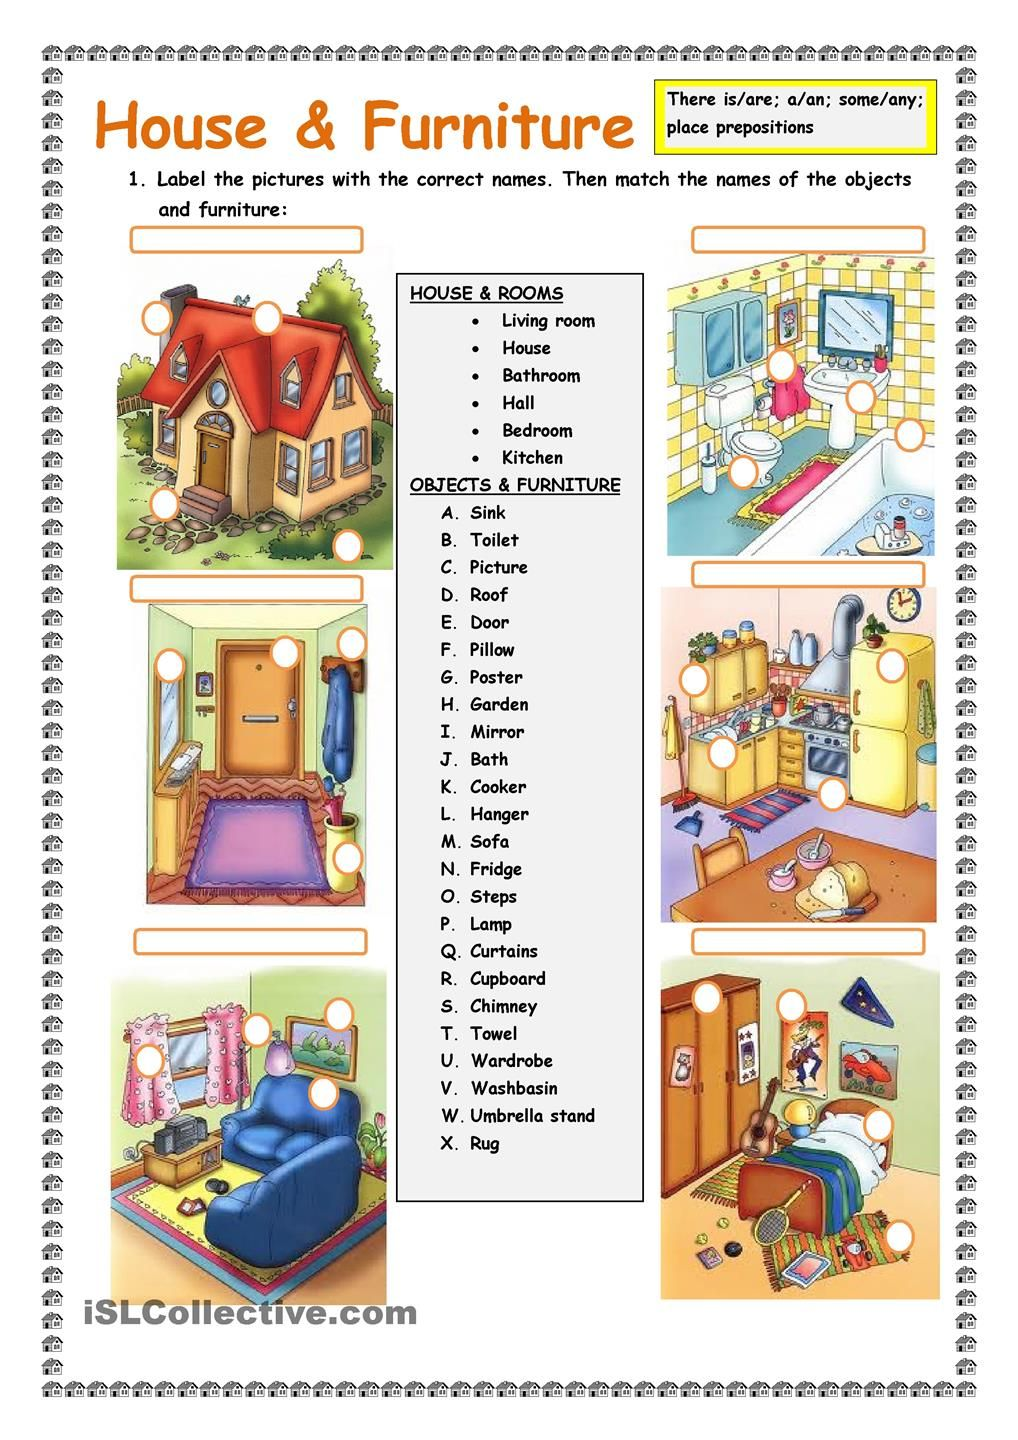 Bedroom furniture names in english - House And Furniture There Is Are Worksheet Free Esl Printable Worksheets Made Vocabulary Worksheetsprintable Worksheetsenglish